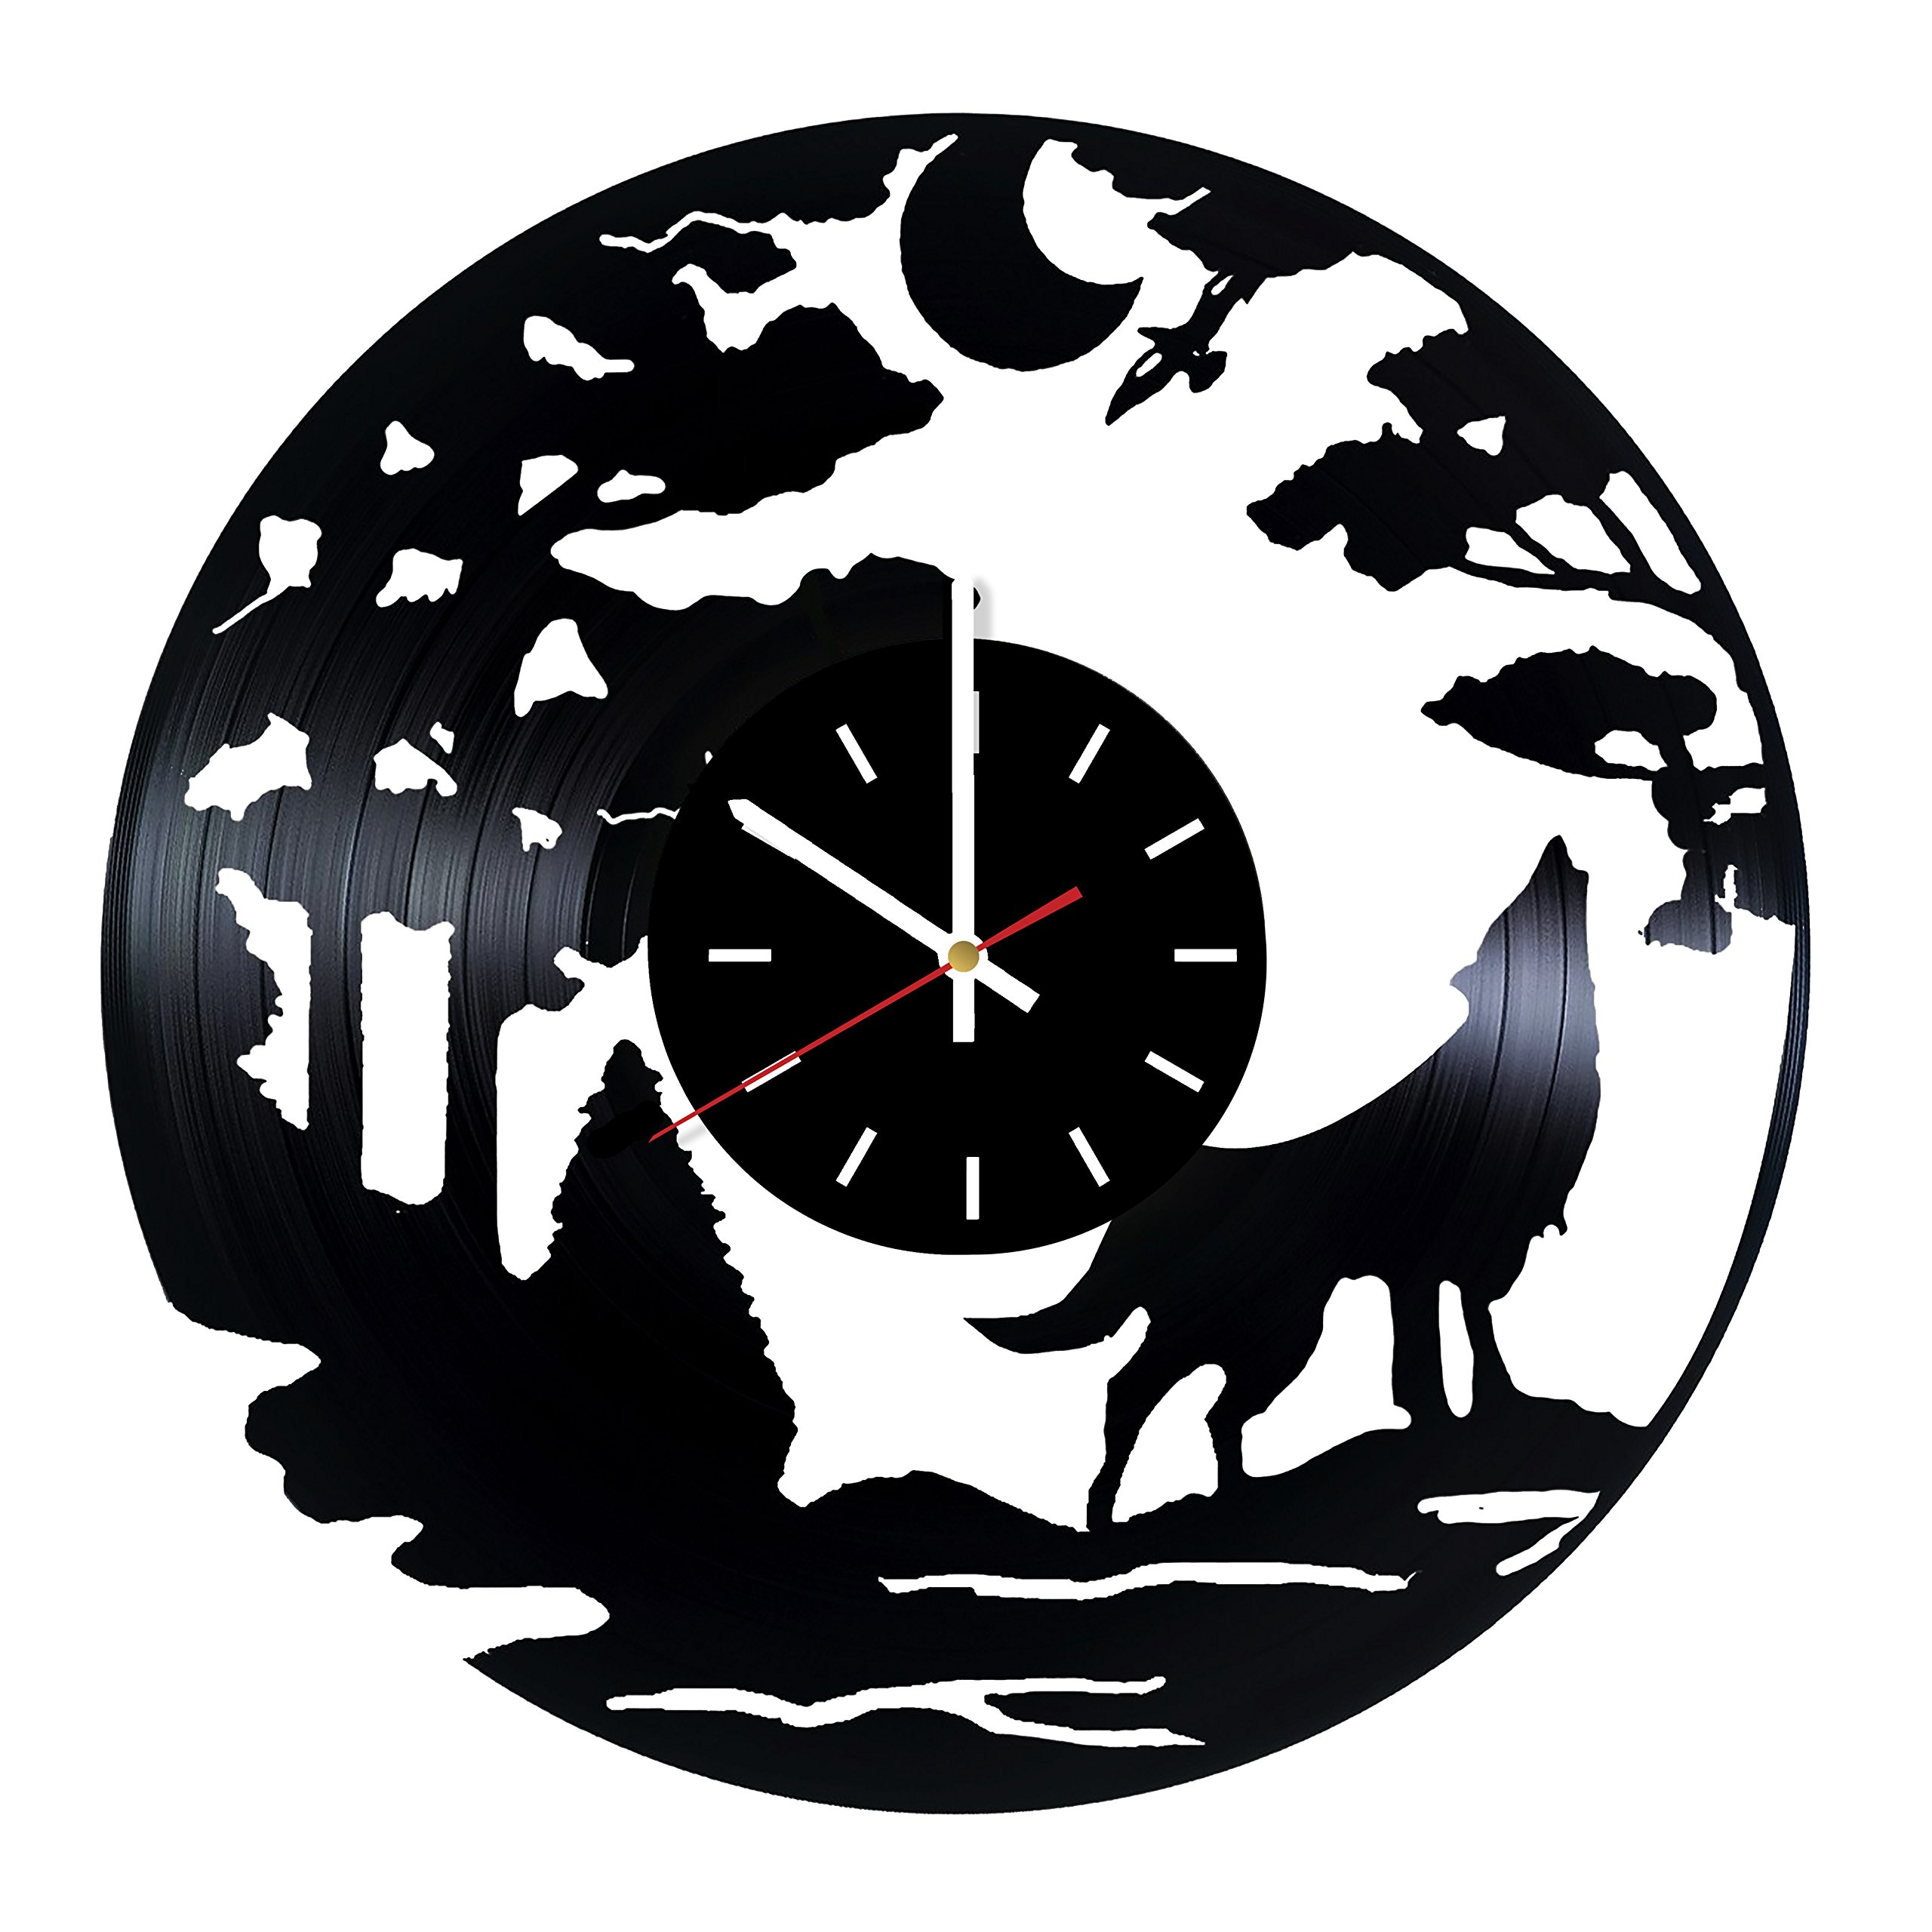 Everyday Arts Wolf Design Vinyl Record Wall Clock - Get Unique Bedroom or Garage Wall Decor - Gift Ideas for Friends, Brother - Wolf Unique Modern Art by Everyday Arts